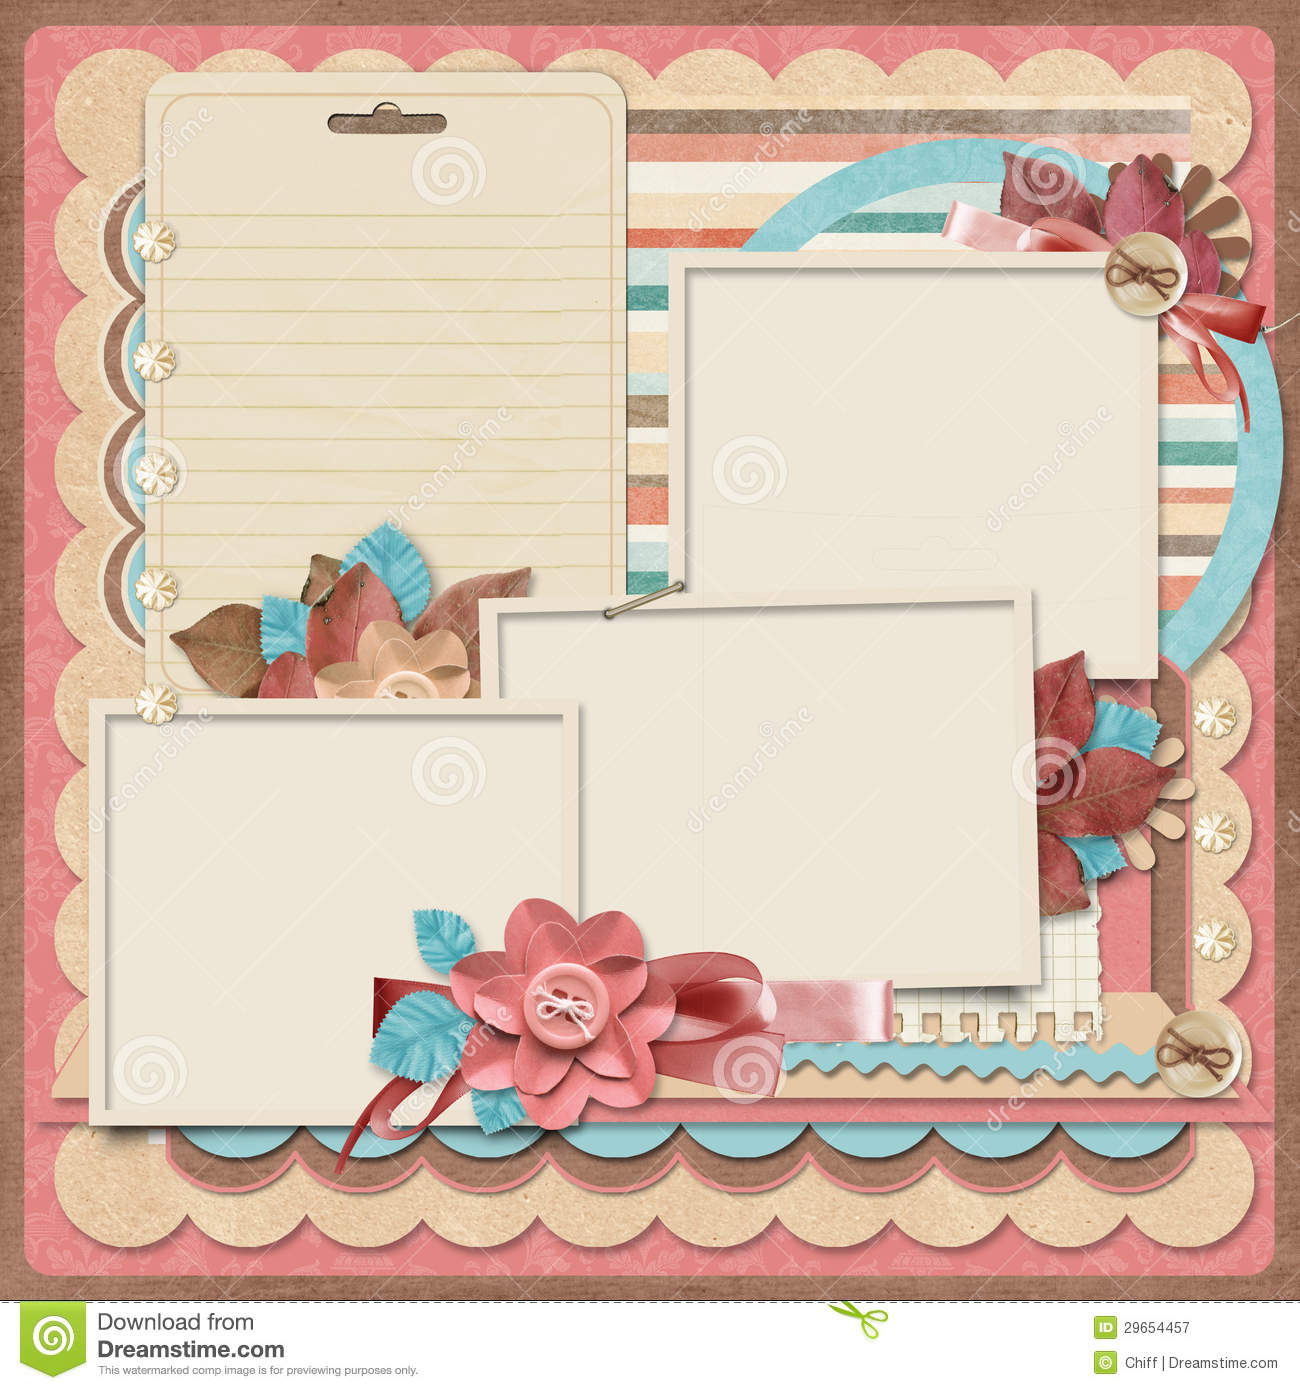 12 Free Design Templates For Scrapbooking Images - Free Scrapbook - Free Printable Scrapbook Pages